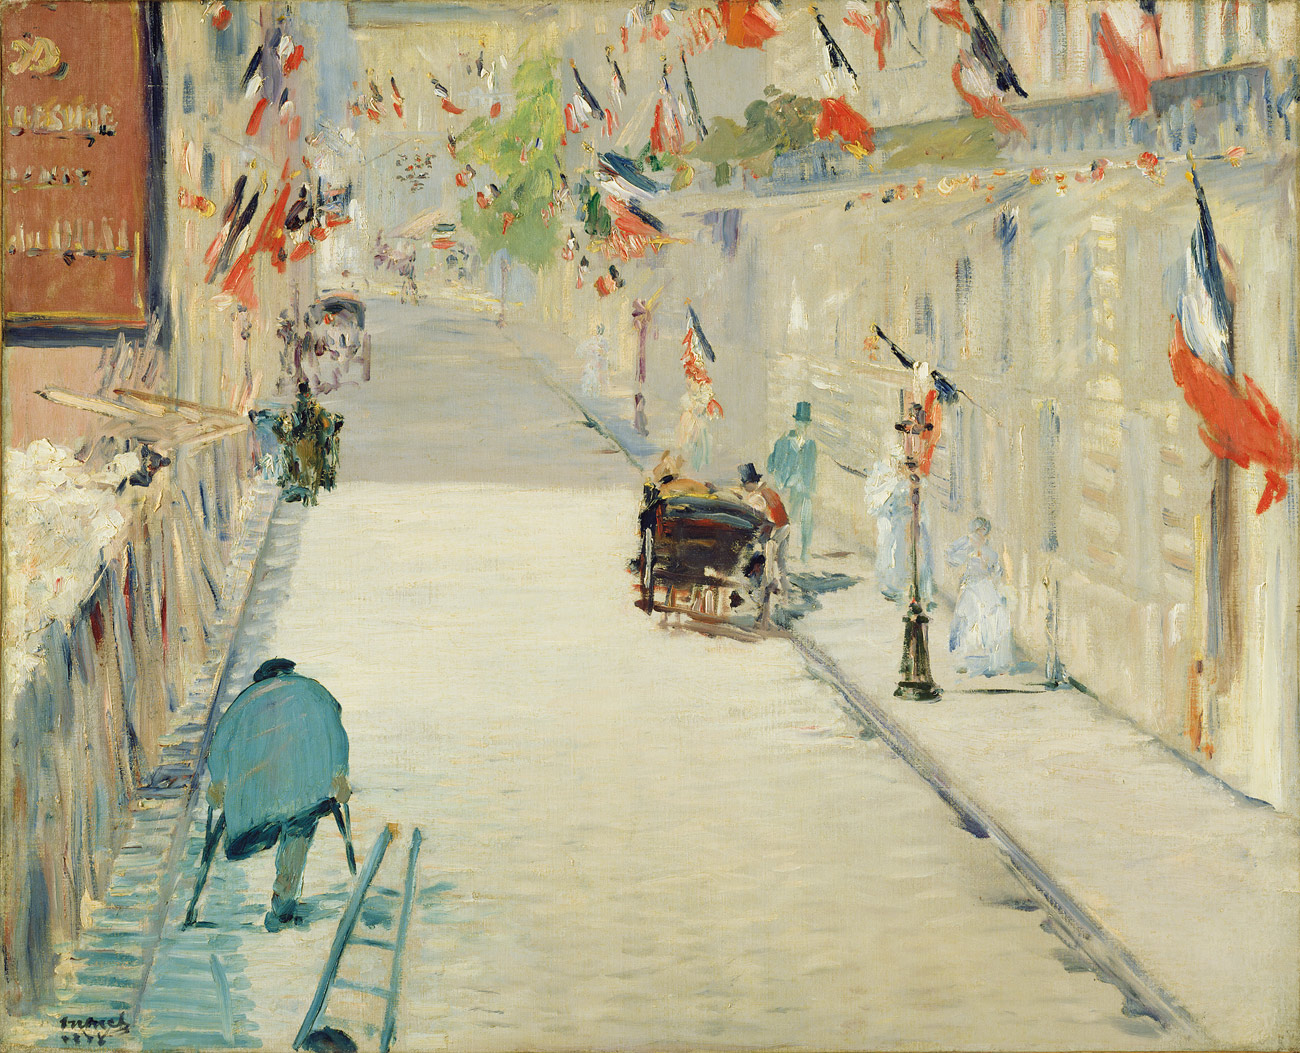 Painting of a mostly empty street lined with French flags. A person with one leg walks up the street with crutches. A carriage is further up the street, with several people standing beside it.